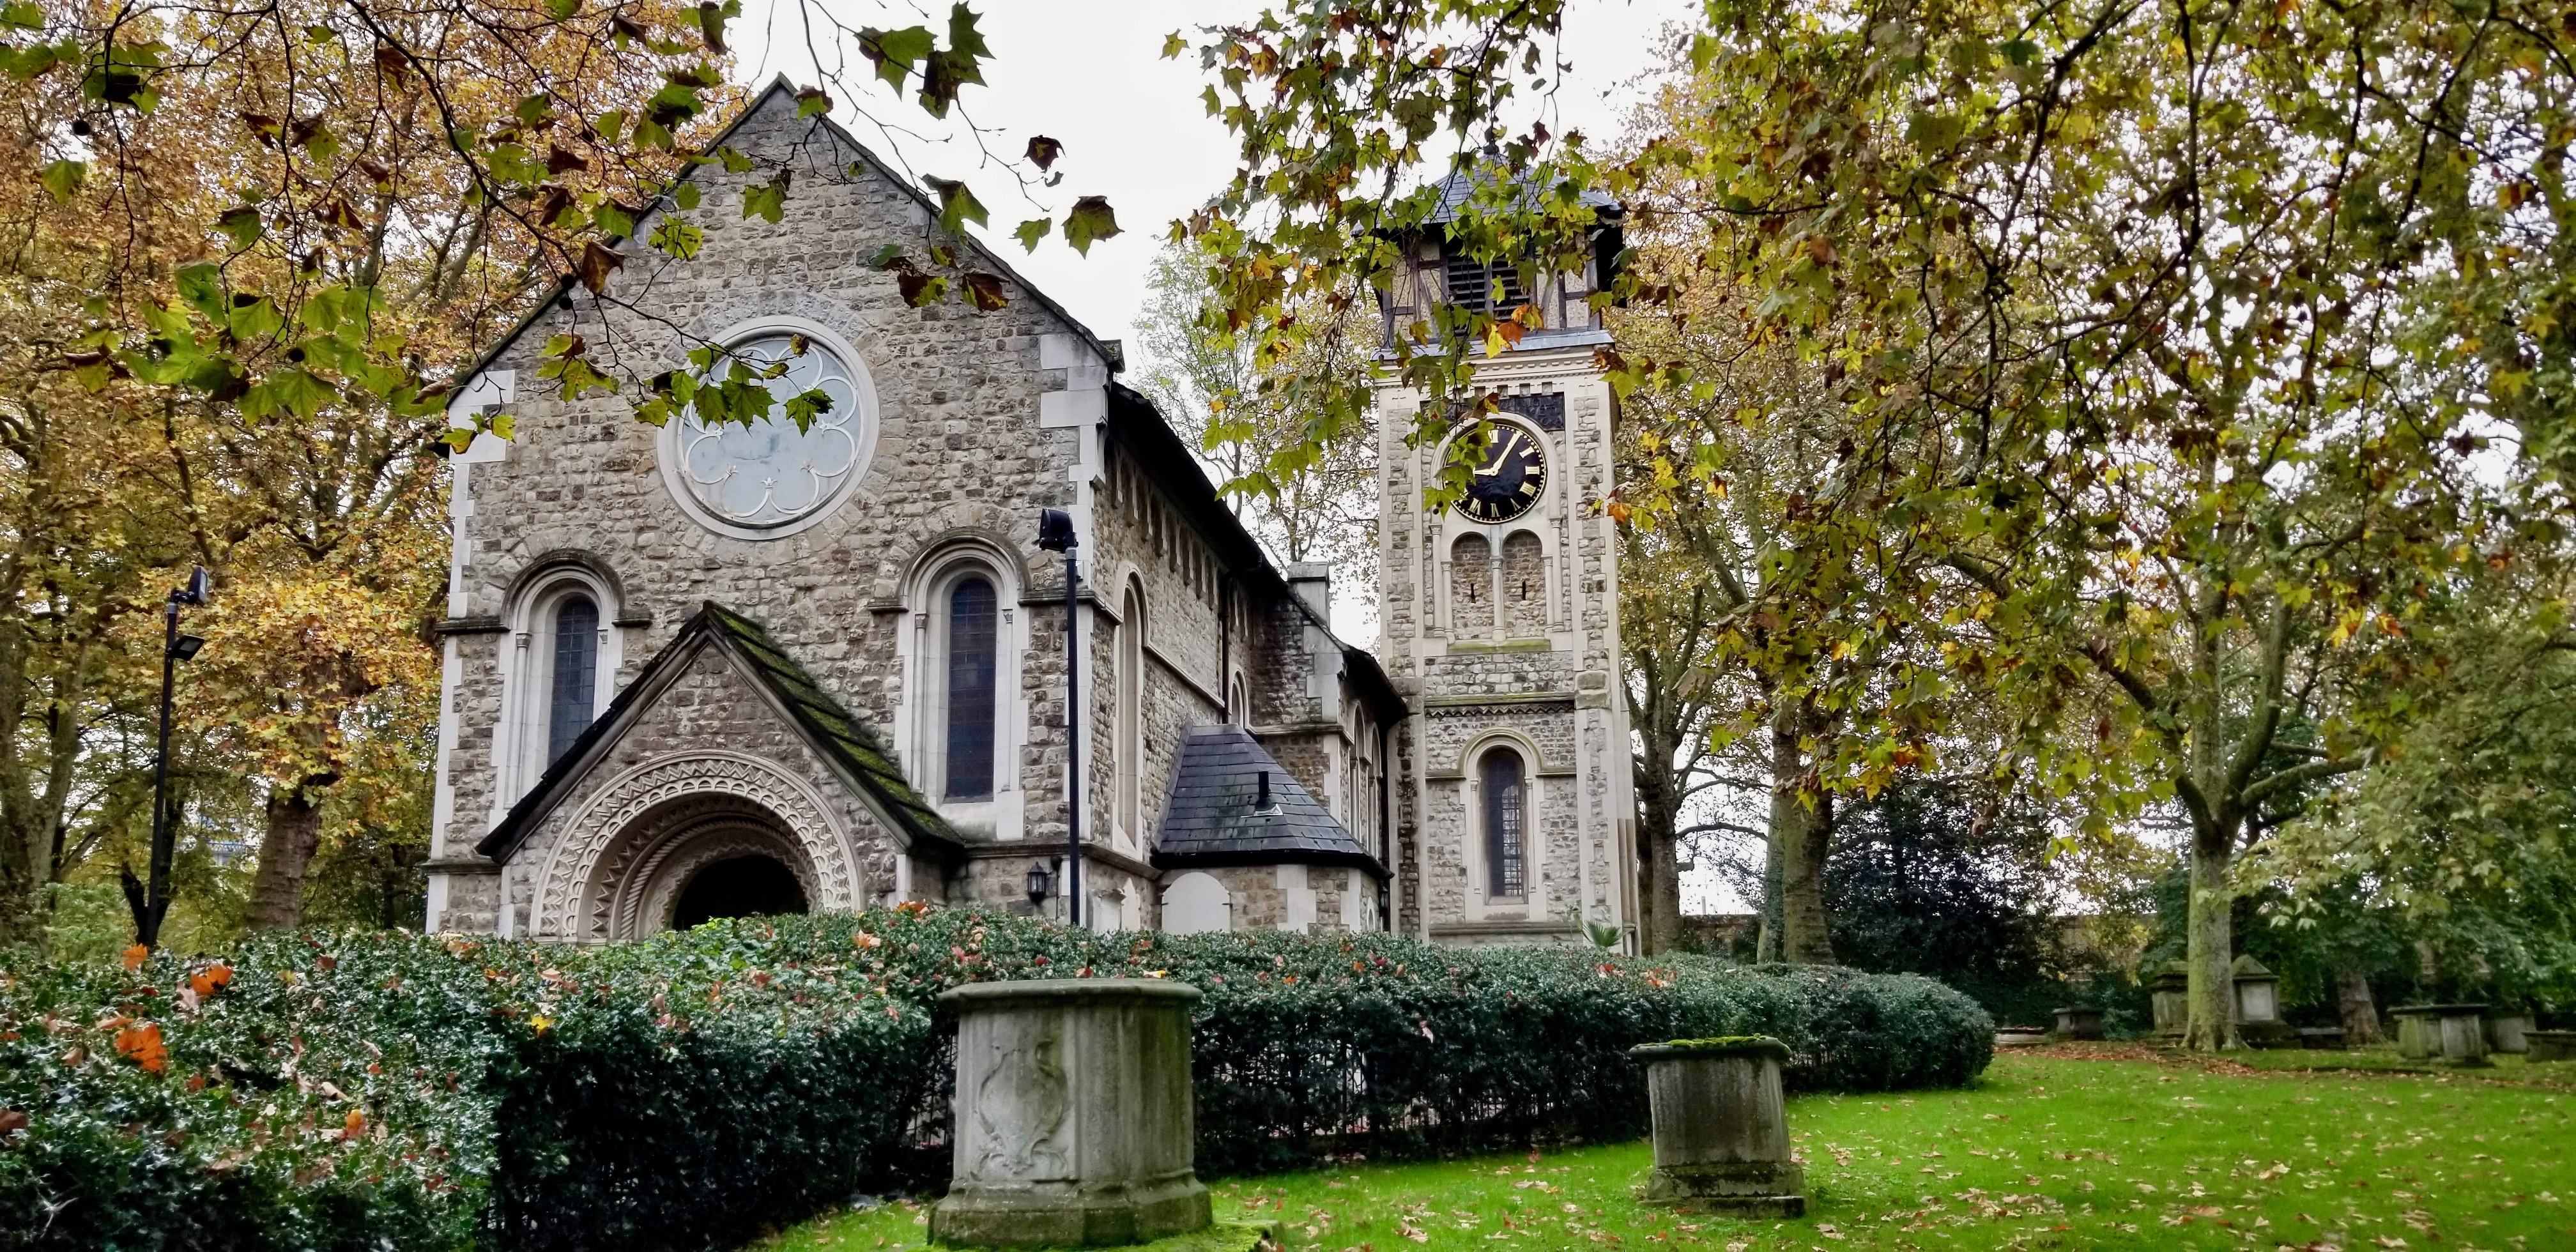 The St. Pancras Old Church in London on Oct. 25, 2019.